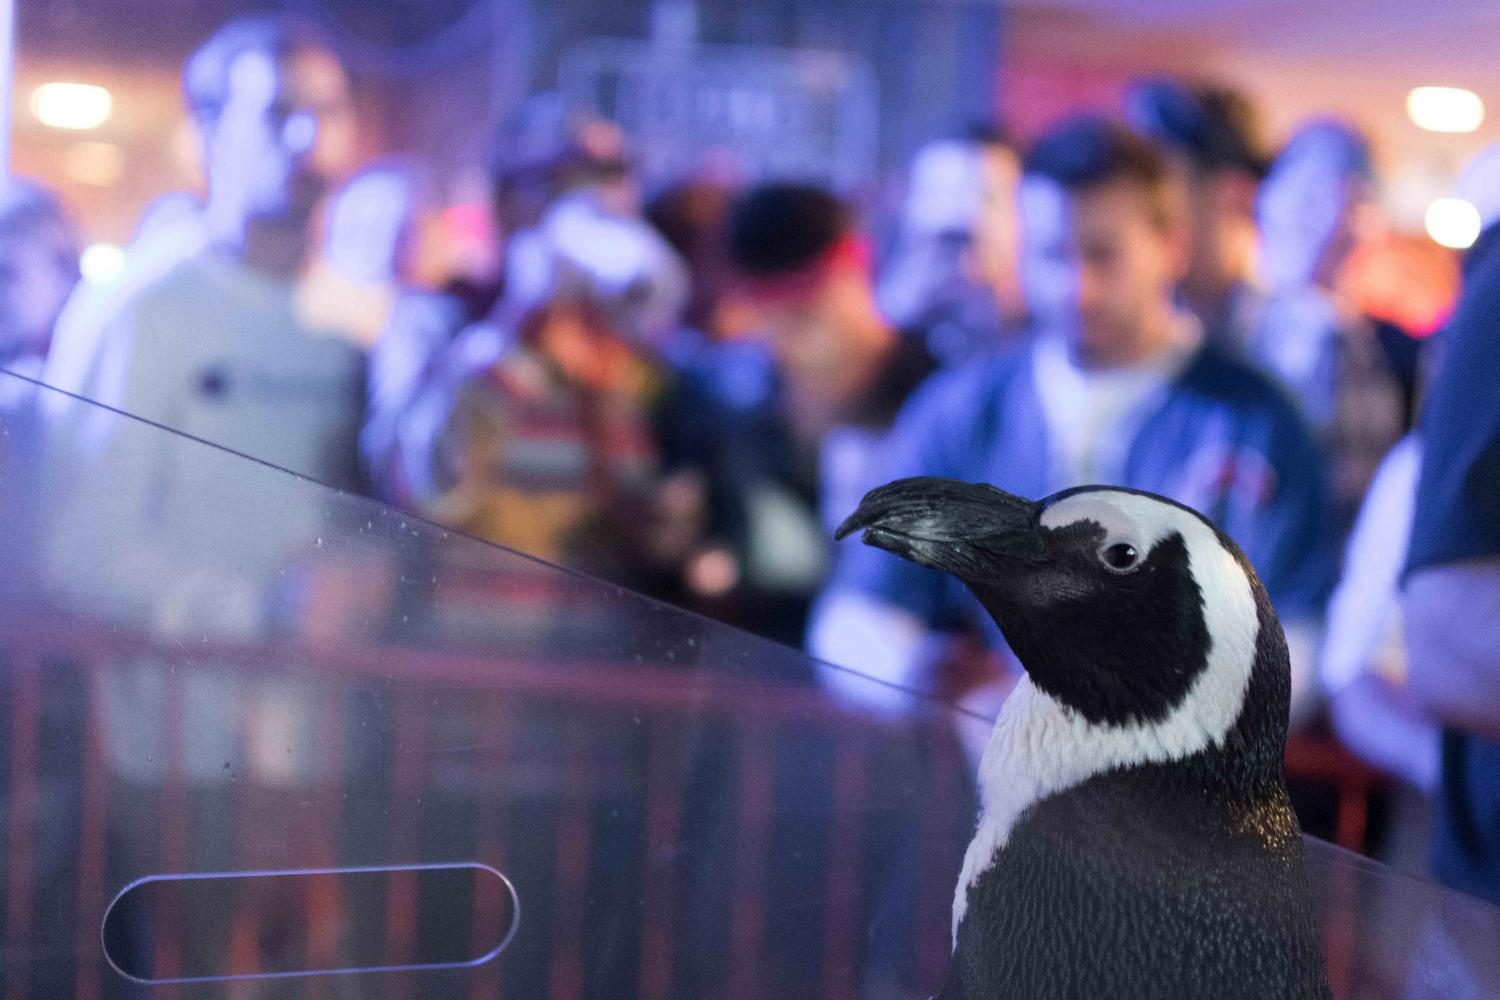 Blueberry, an African penguin, poses for photos at KAM'S happy hour Friday. The Wave Foundation in partnership with KAM'S held the event Friday to raise money for African penguins that are currently on the verge of extinction.